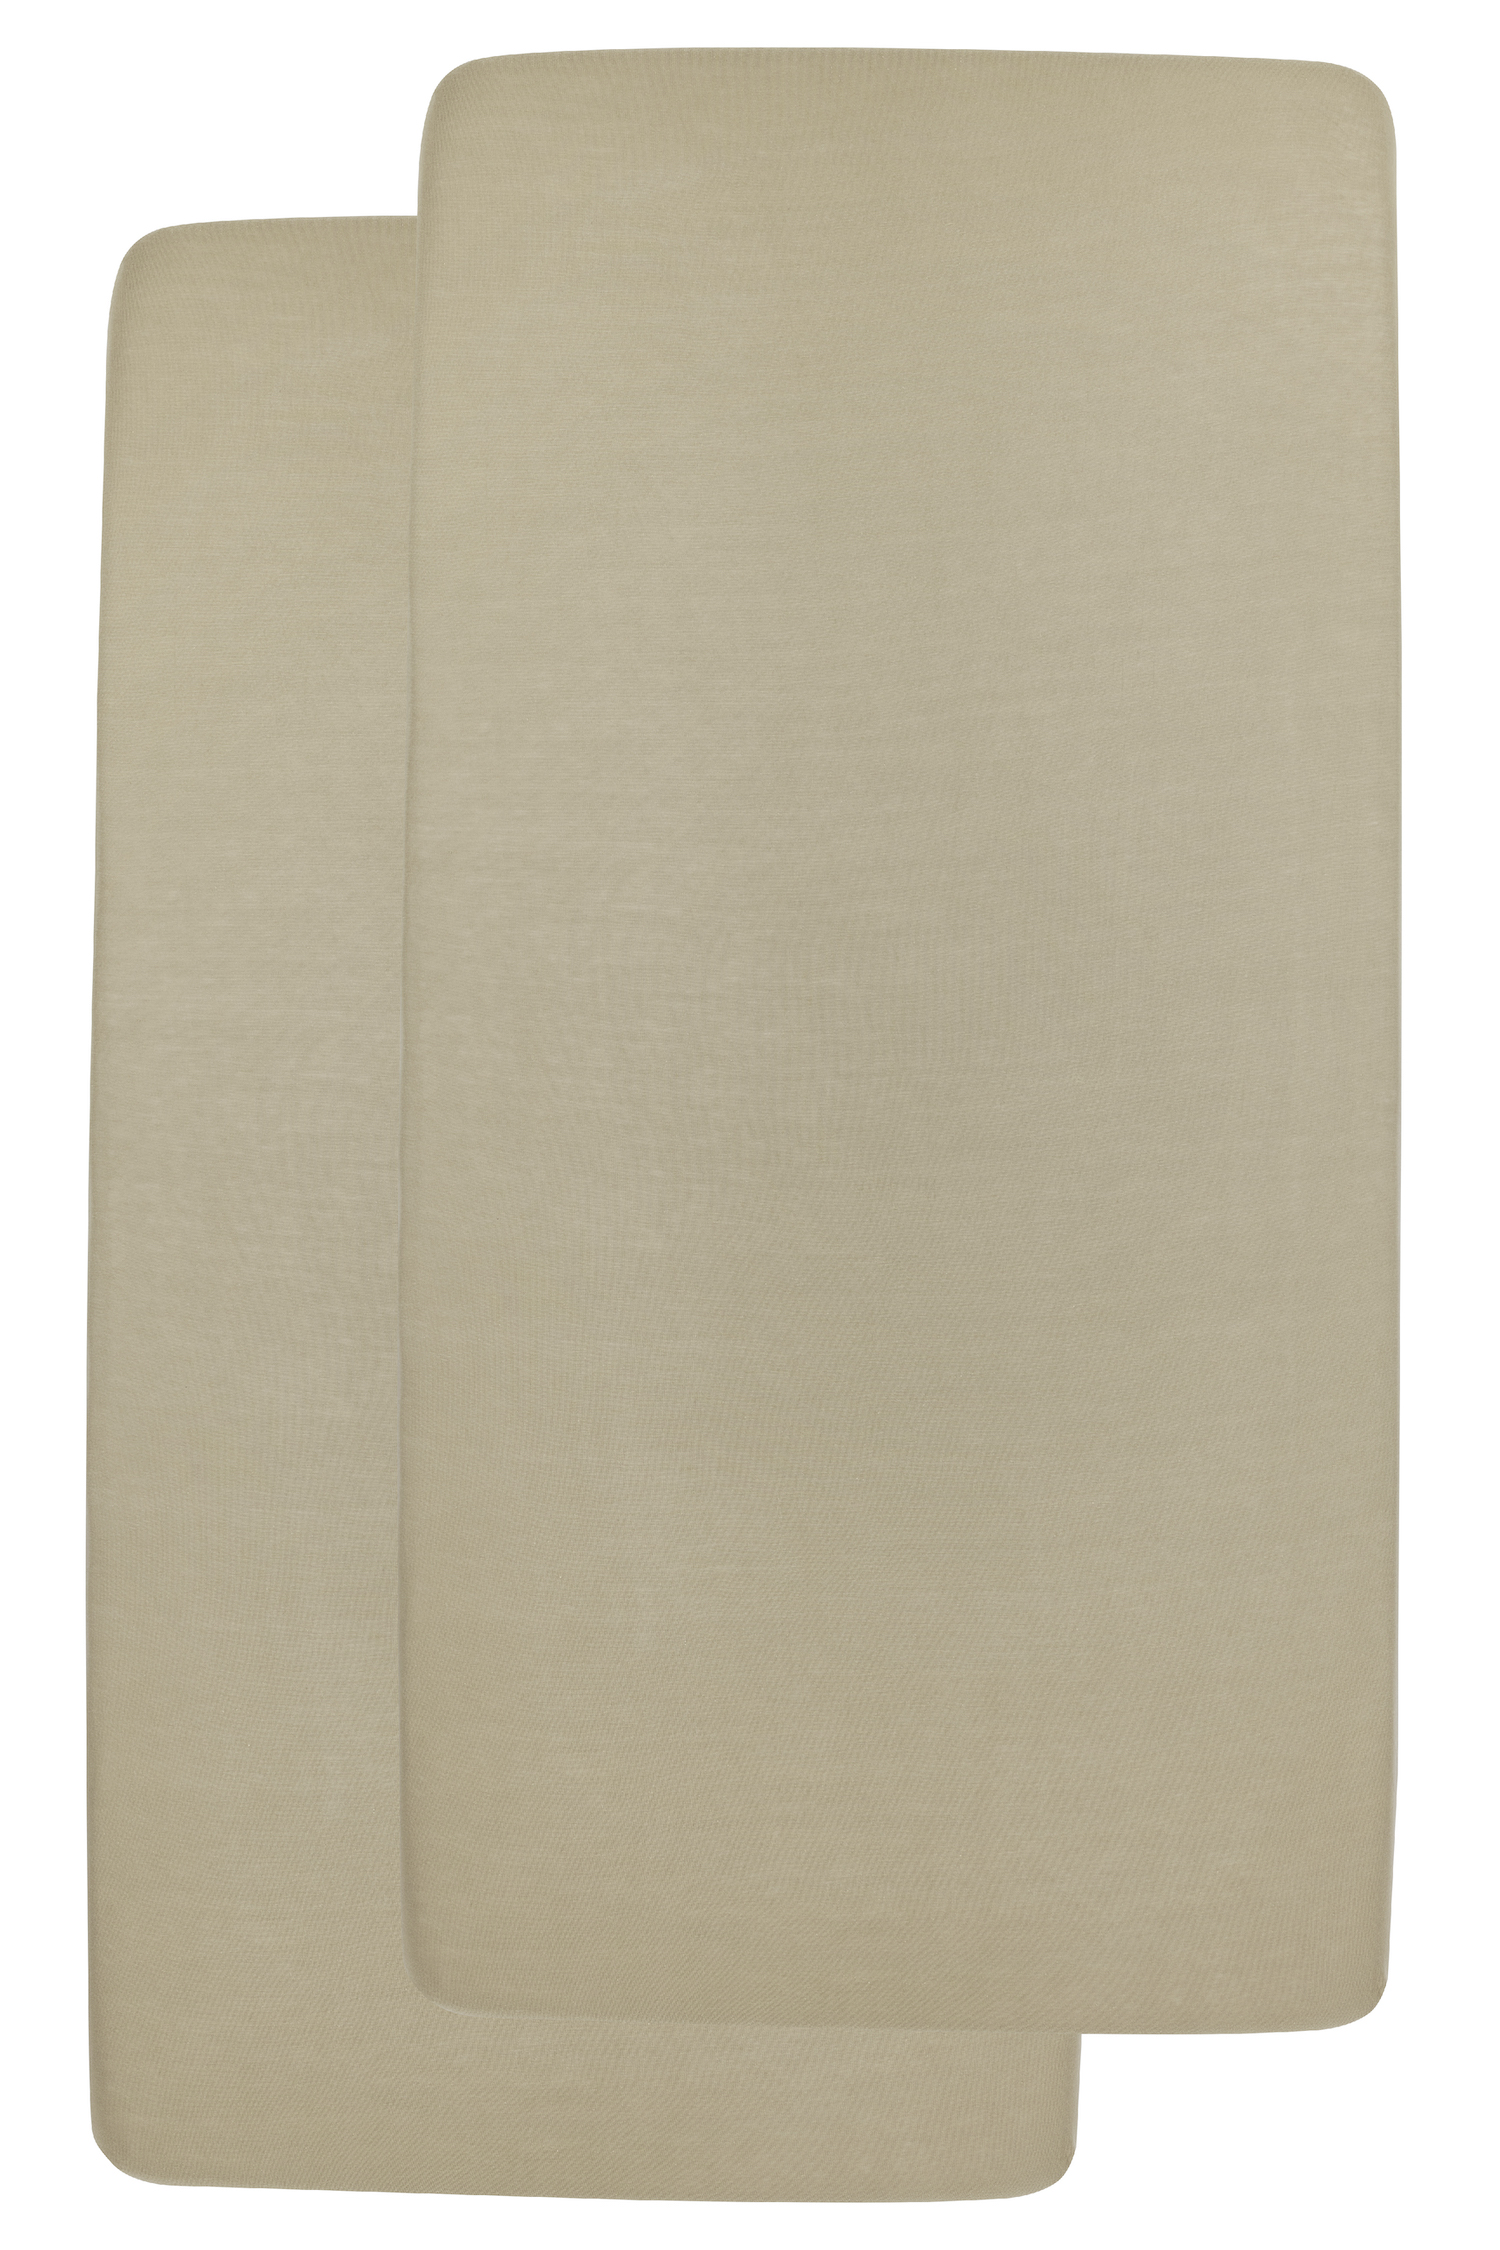 Jersey Hoeslaken Juniorbed 2-pack - Taupe - 70x140/150cm